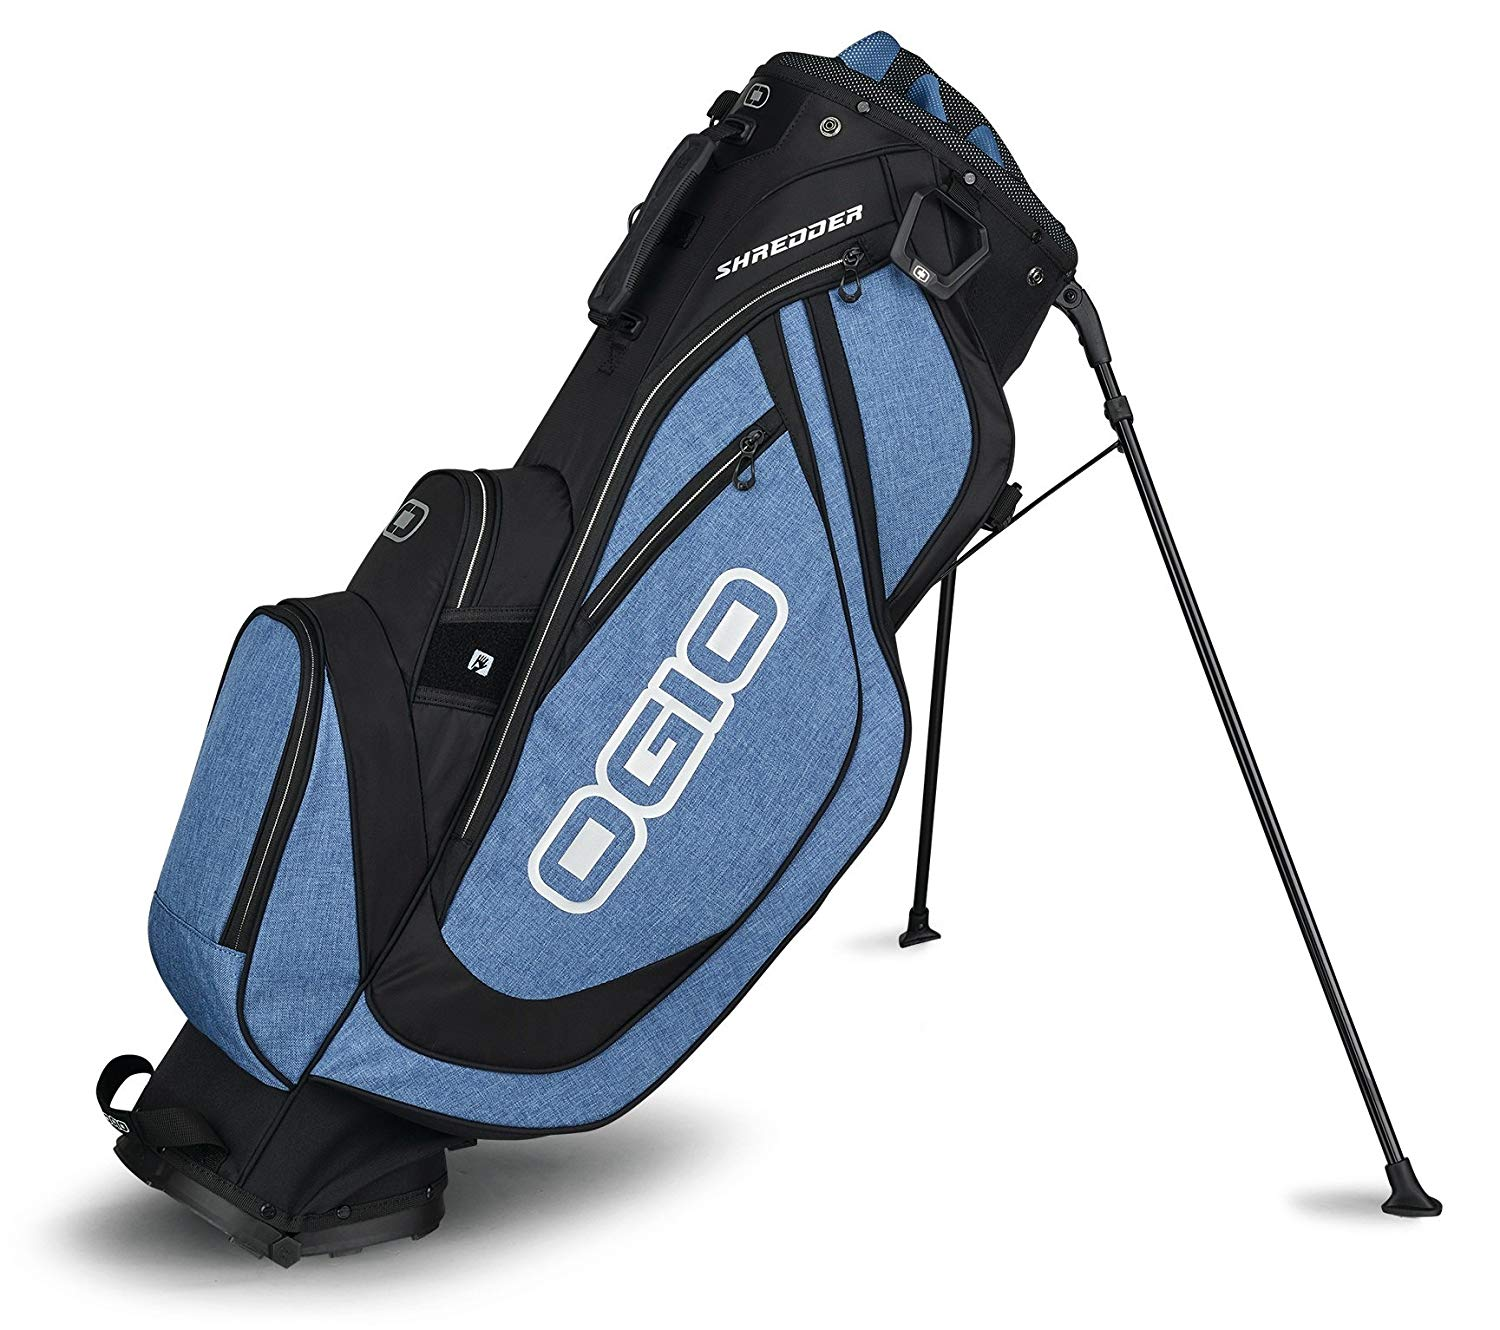 OGIO 2018 Shredder Stand Bag